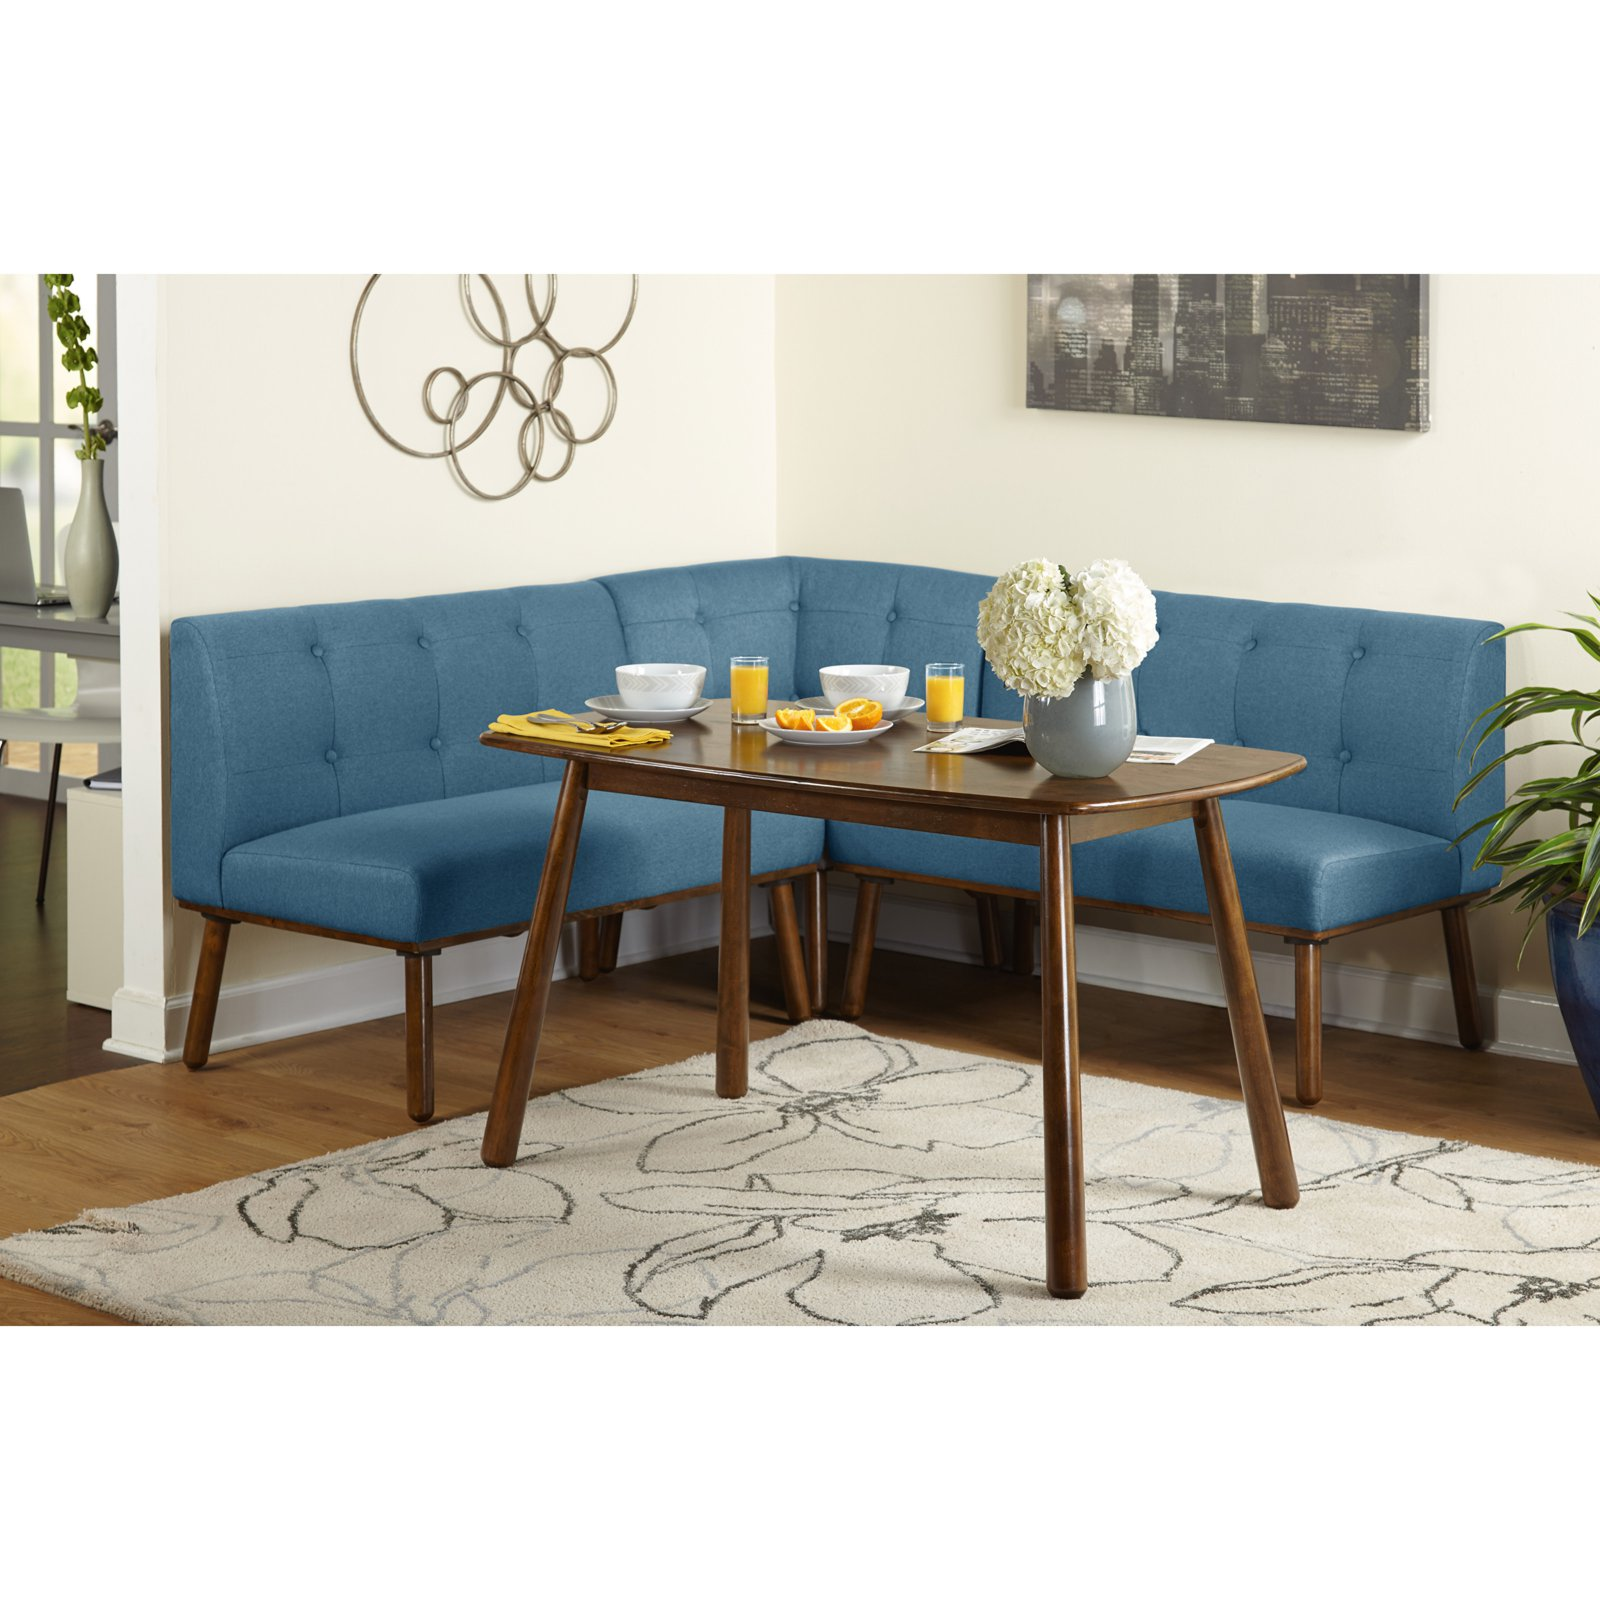 Target Marketing Systems Playmate 4 Piece Nook Dining Table Set